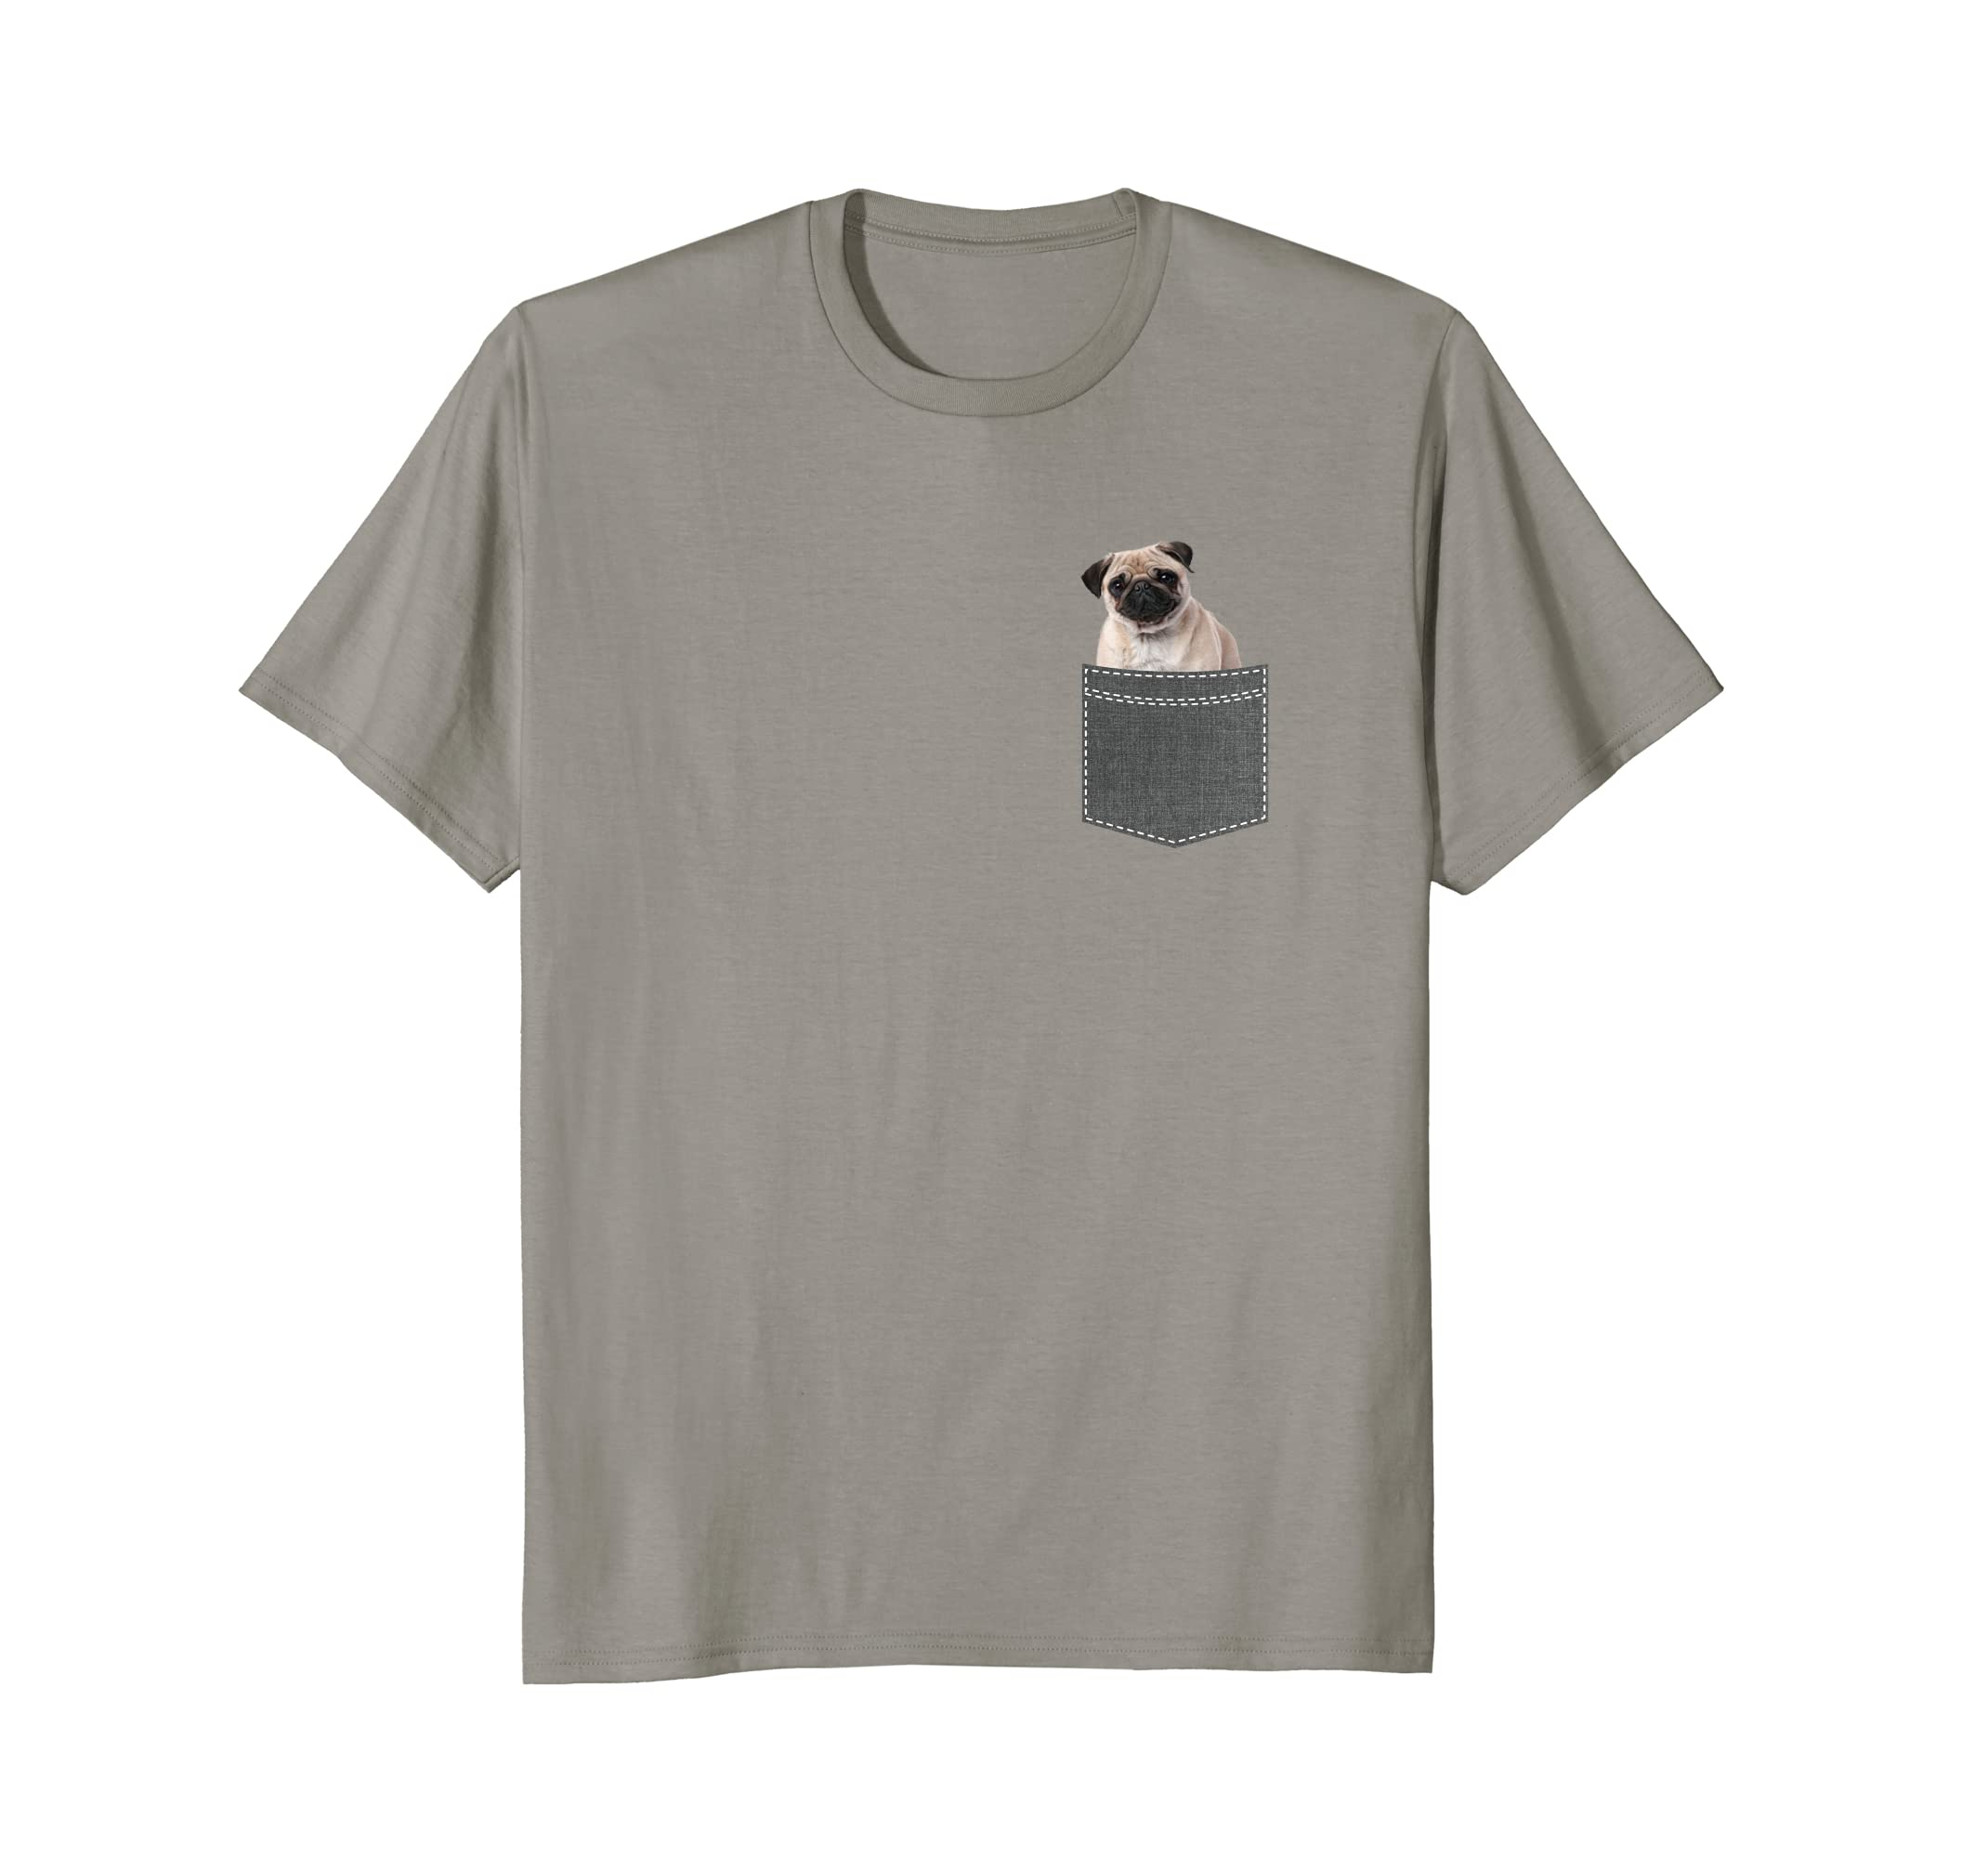 Pug in Your Pocket T-Shirt - Funny Pug Gift for Dog Owners-AZP